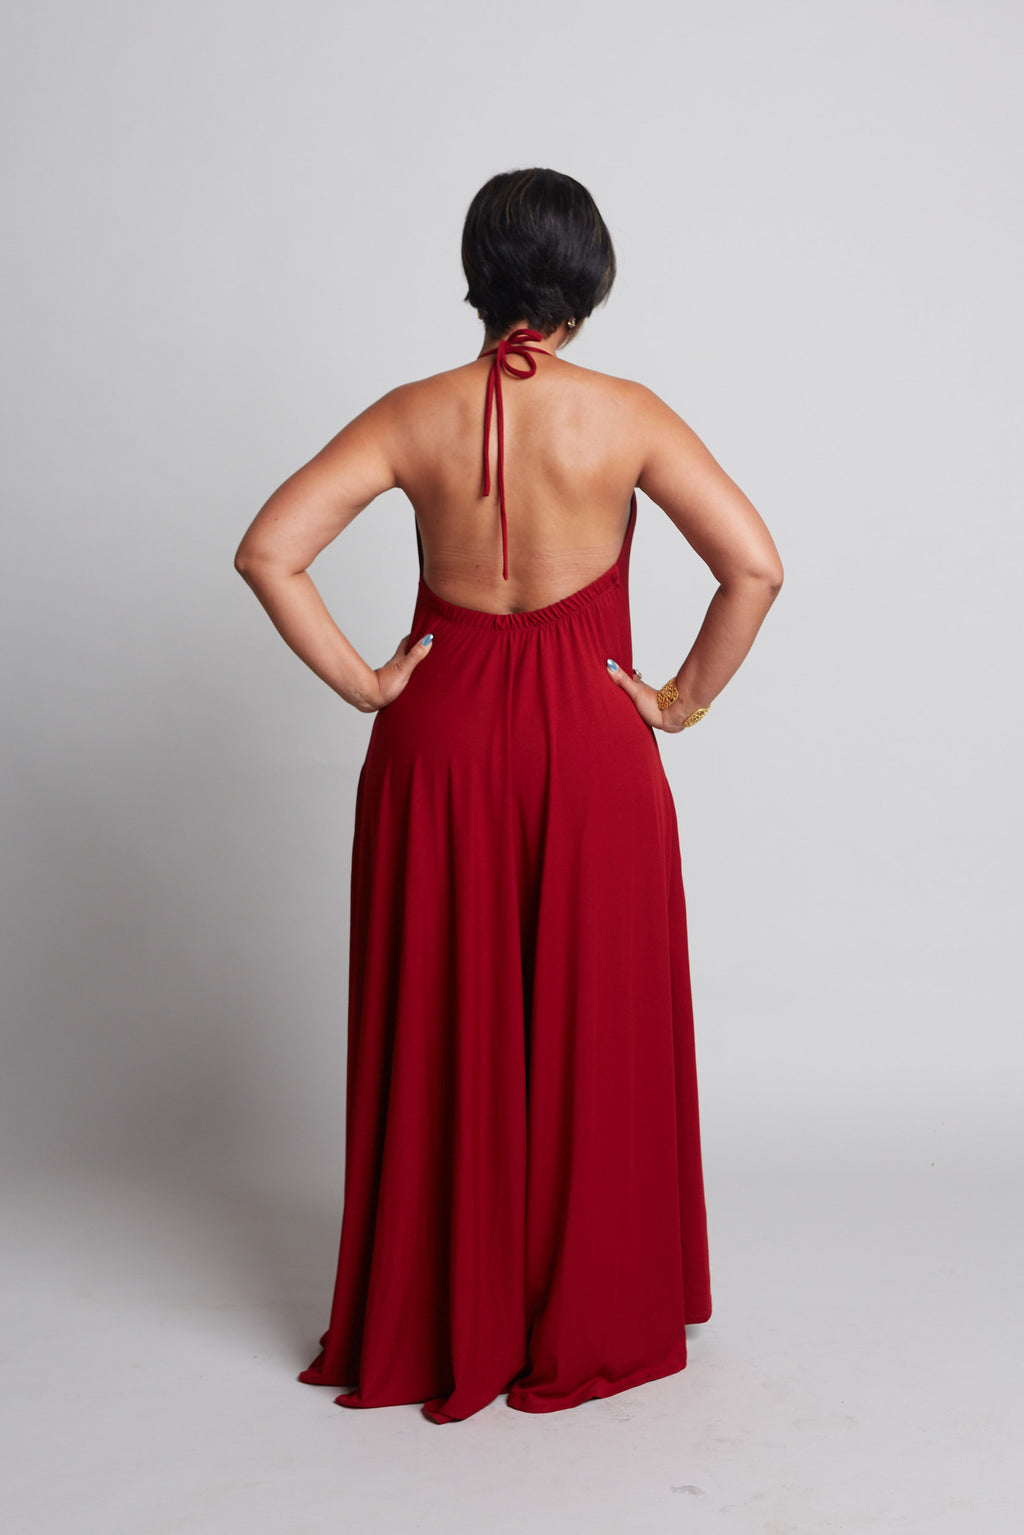 Rachel - Red Halter Dress